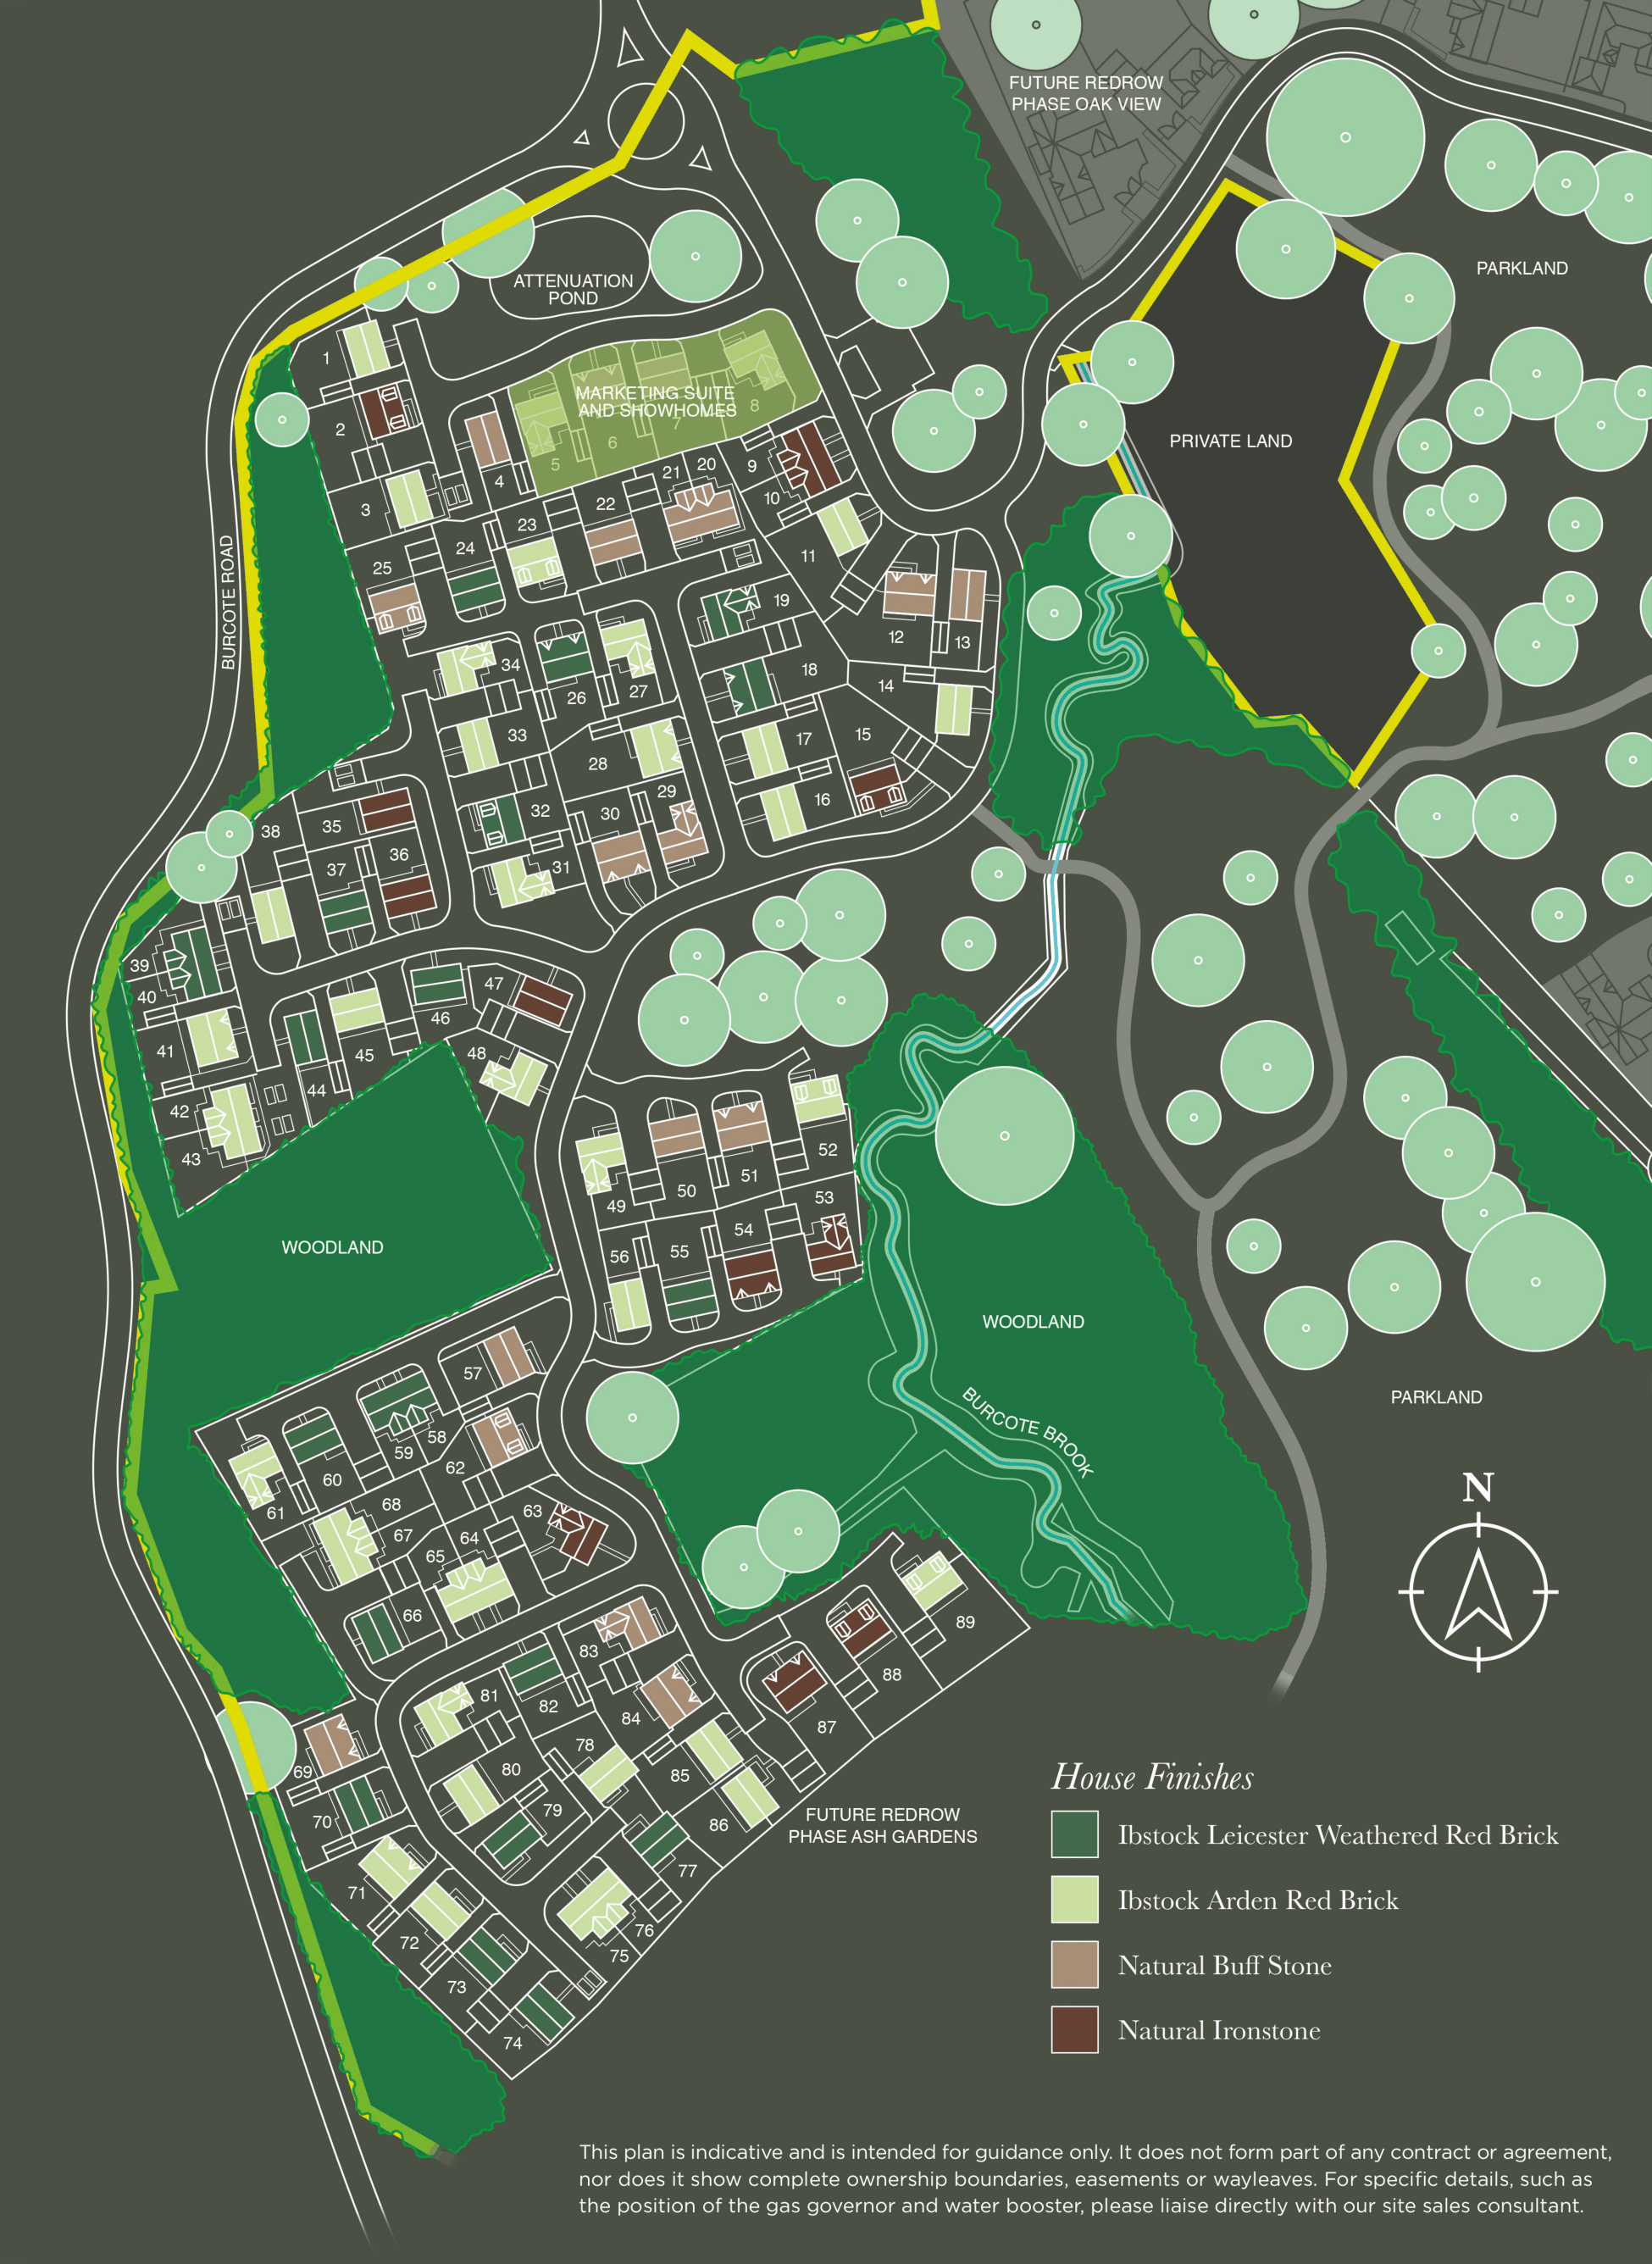 interactive-site-map-2410v1 plan